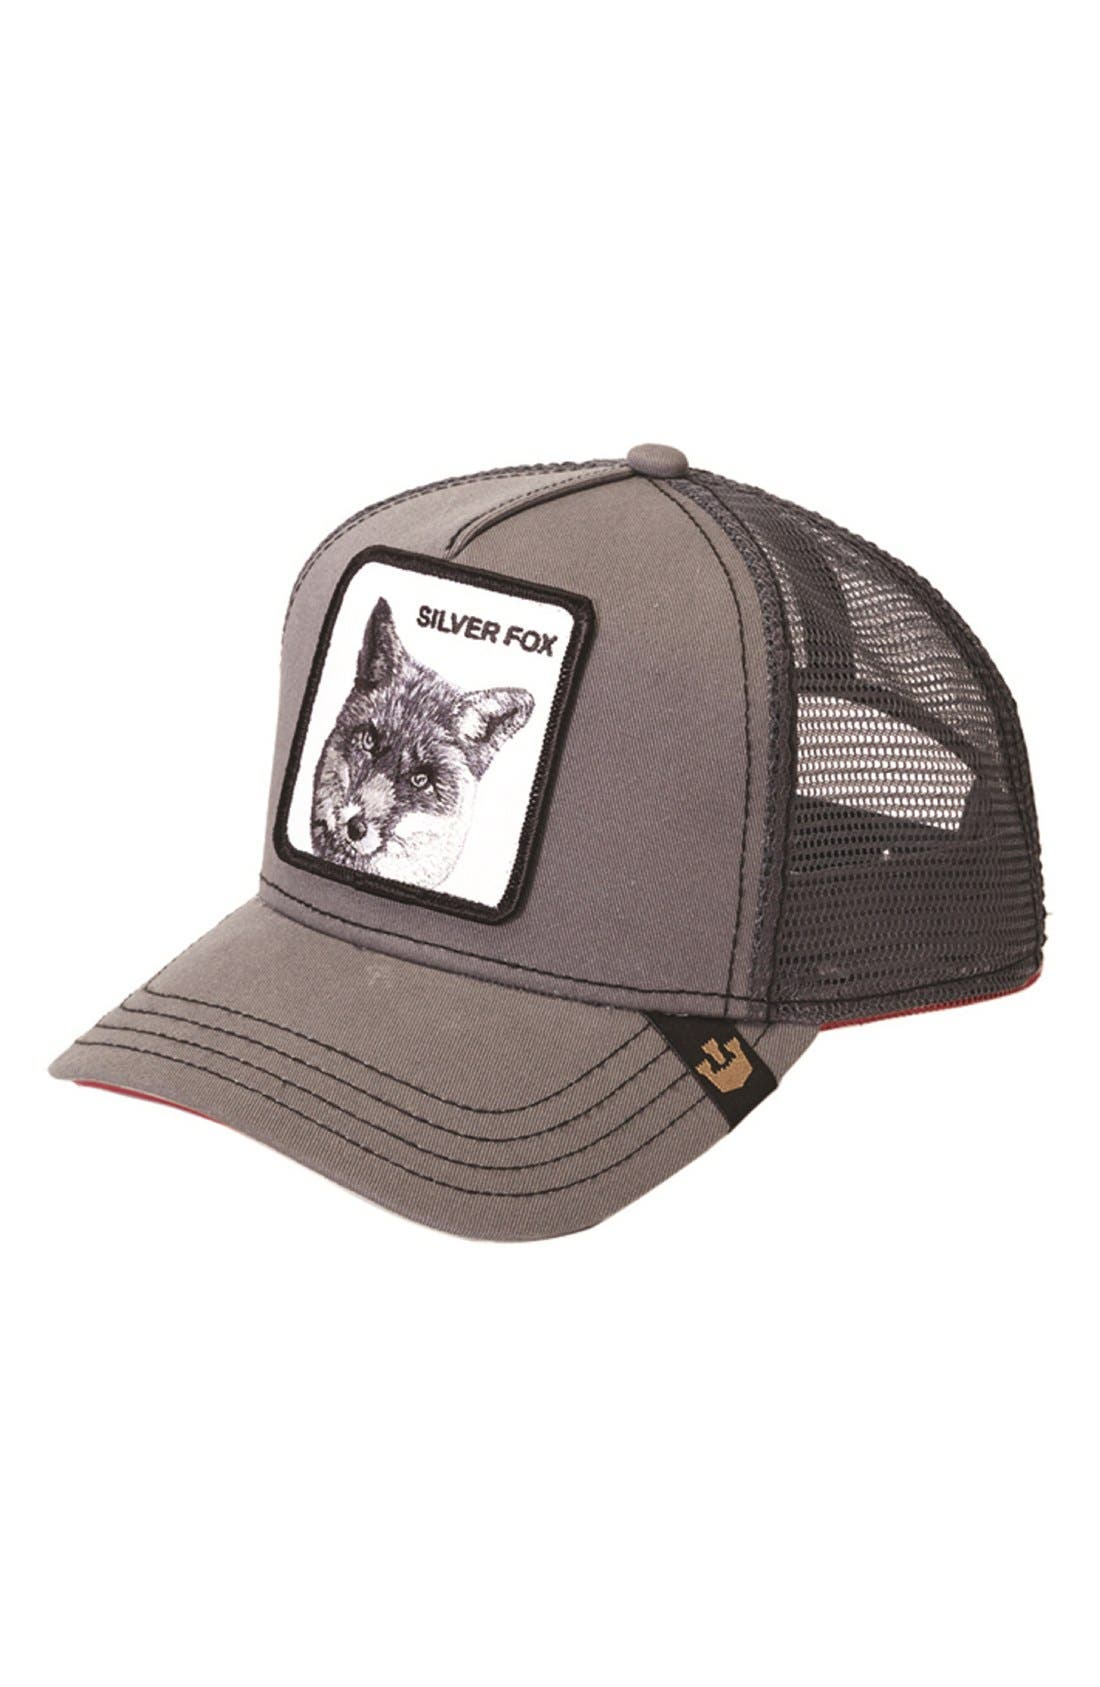 GOORIN BROTHERS Silver Fox Trucker Hat